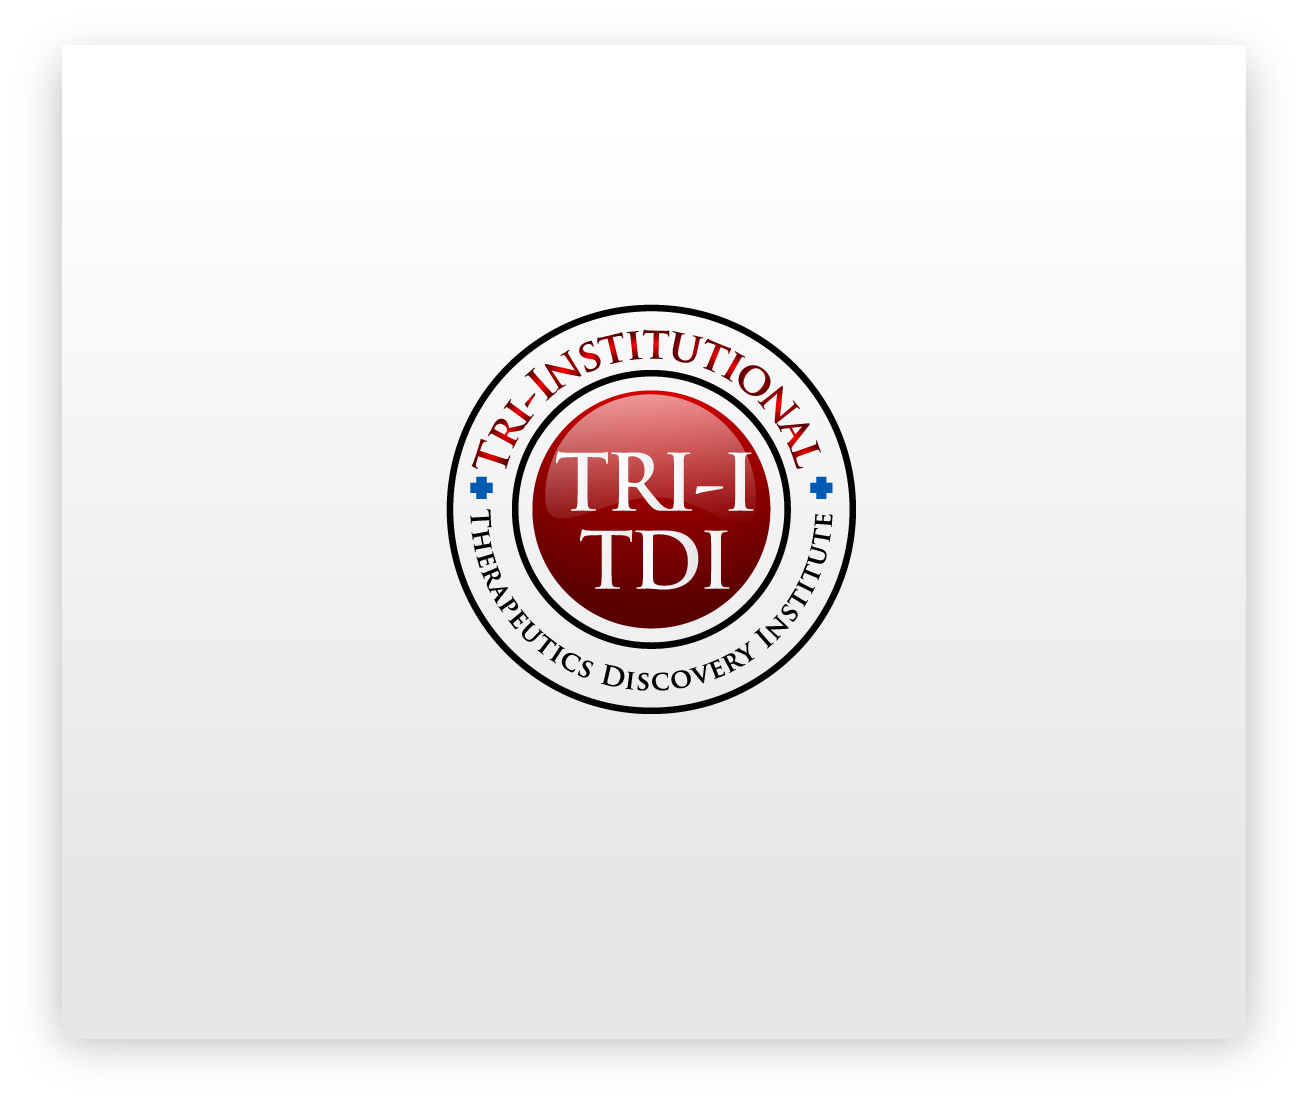 Logo Design by zoiDesign - Entry No. 171 in the Logo Design Contest Inspiring Logo Design for Tri-Institutional Therapeutics Discovery Institute.